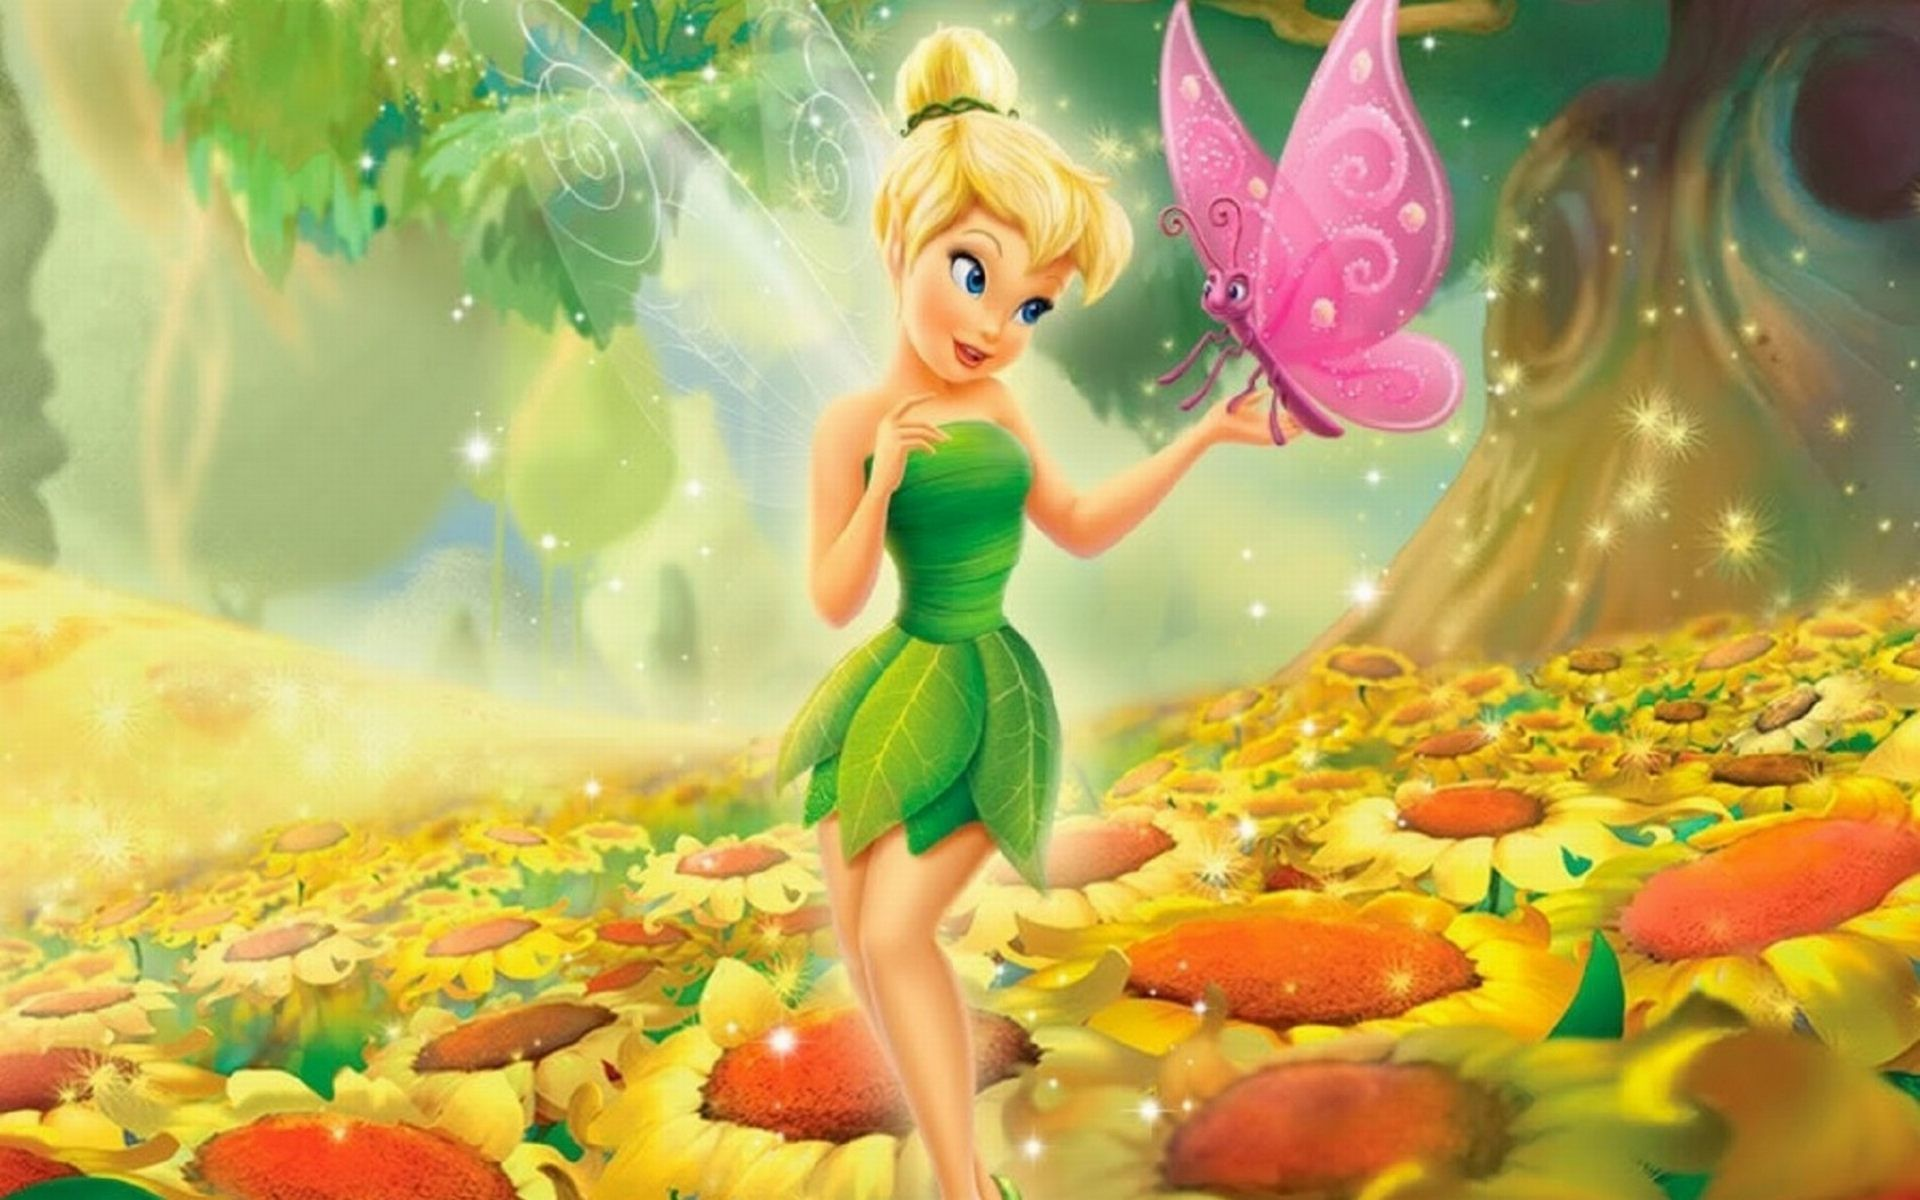 Tinkerbell Wallpaper for desktop and mobile in high resolution free